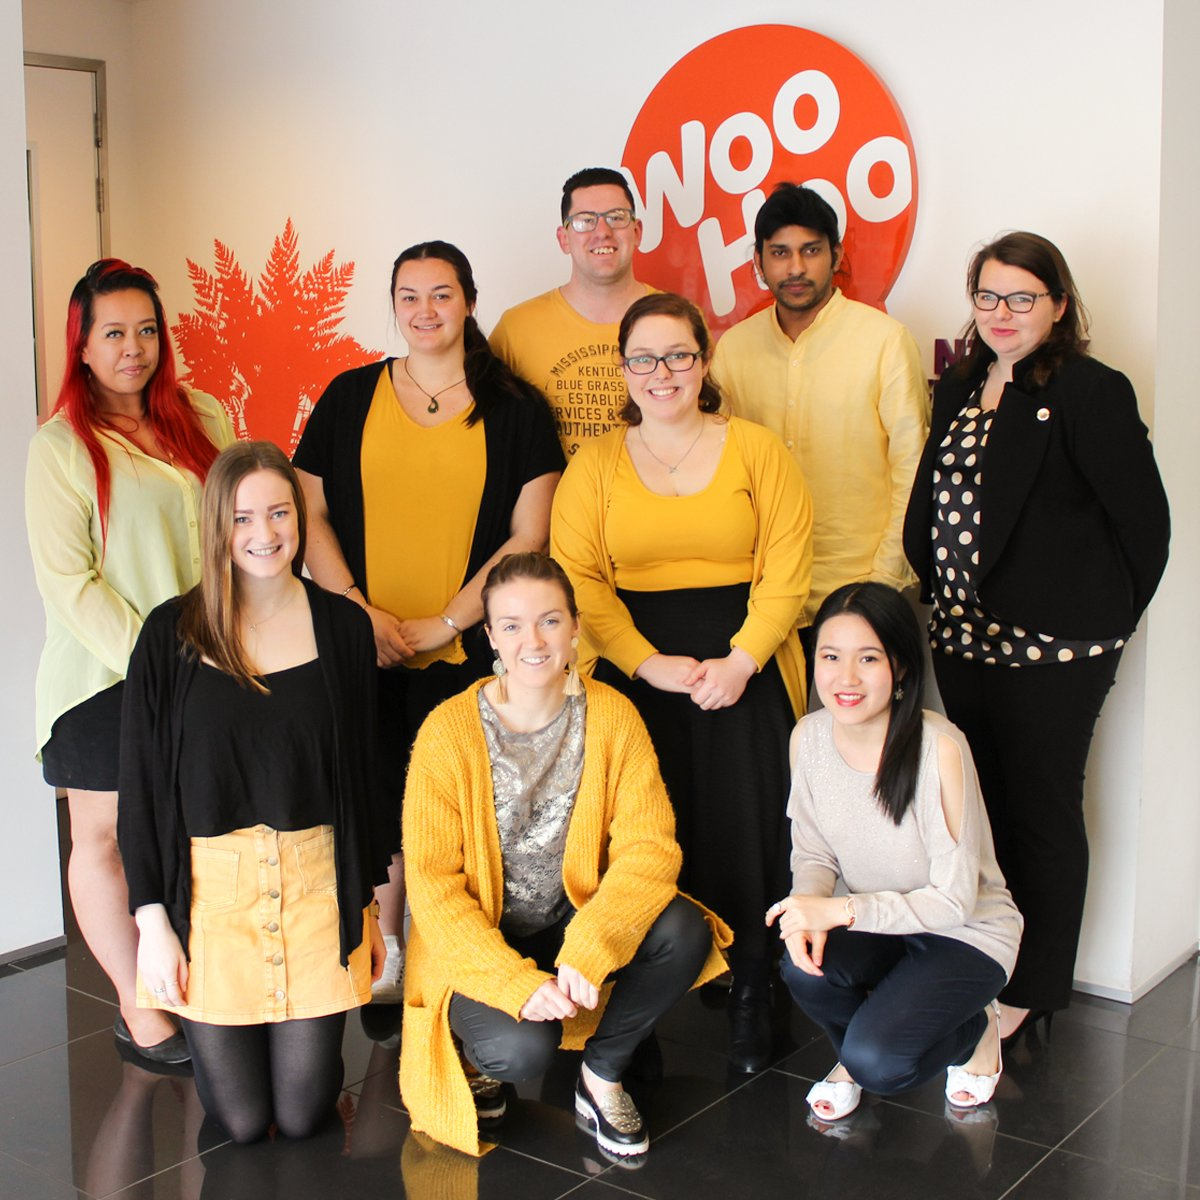 Dressing up in the #SpiritofGold today to help @NZParalympics head to #Pyeongchang2018 games!